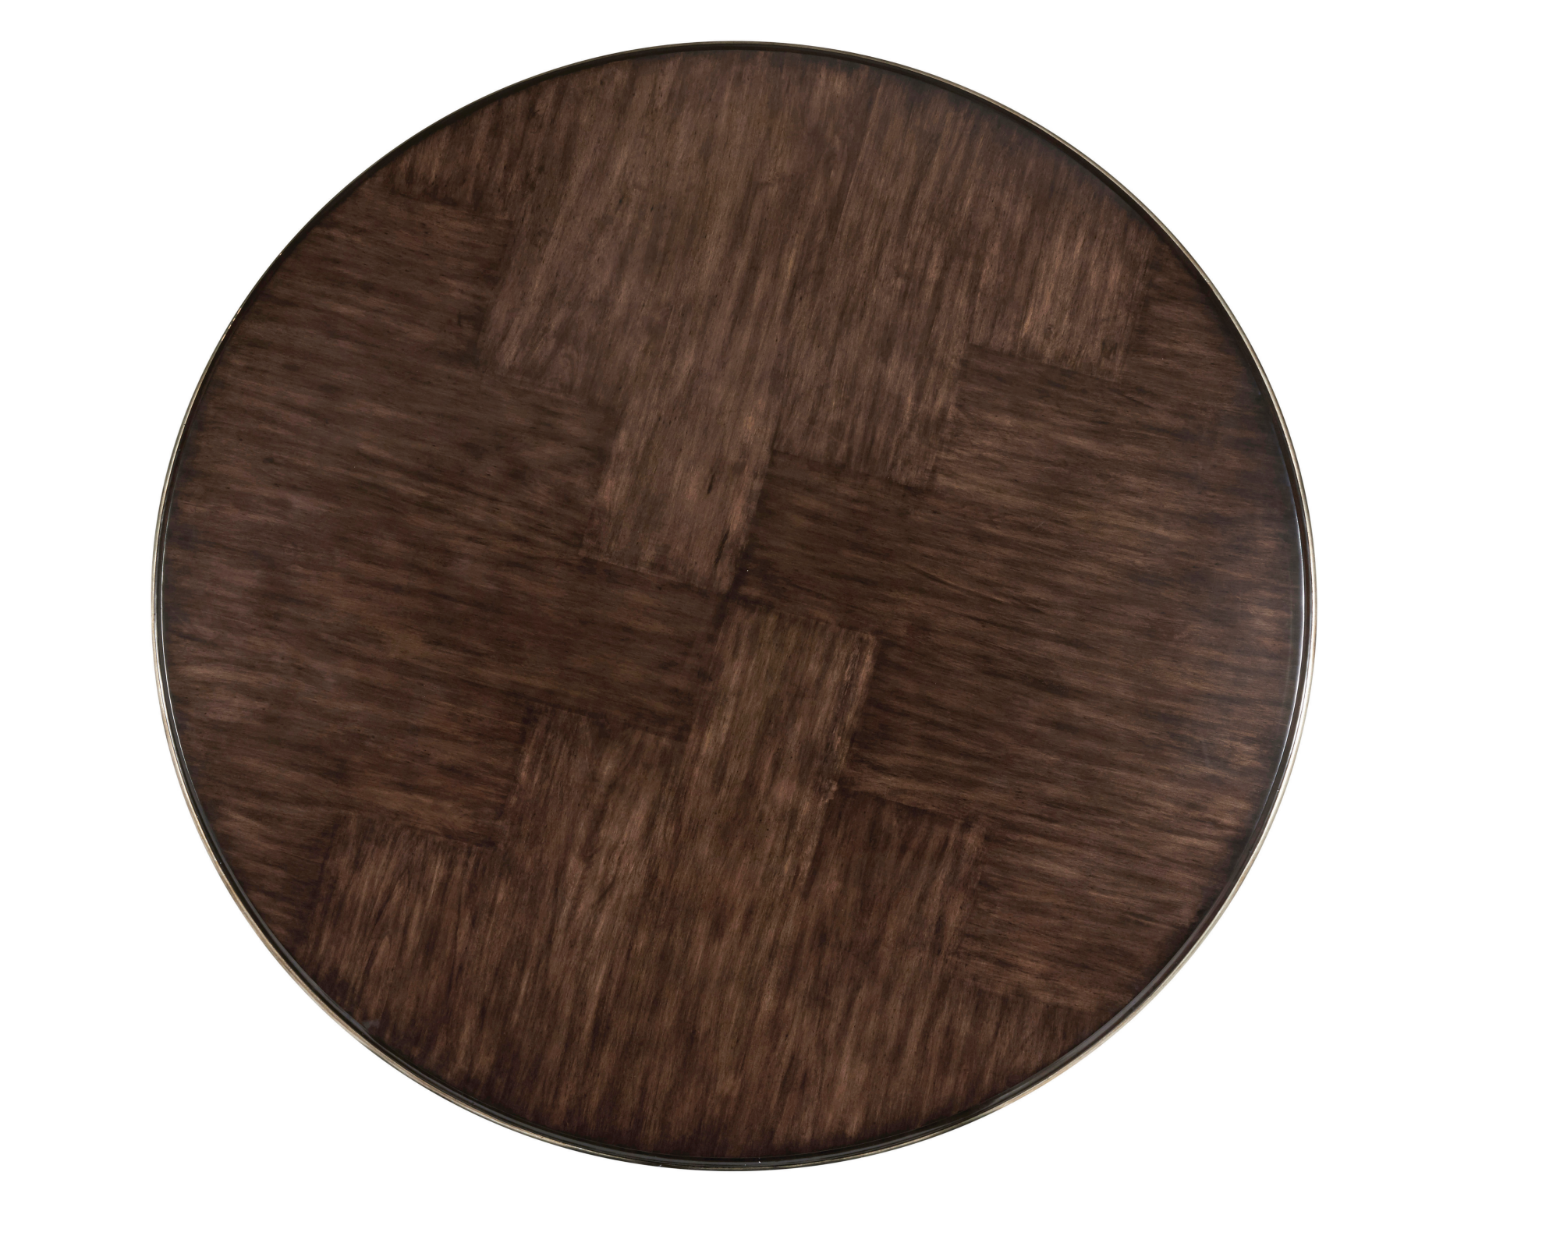 Majorca Round Dining Table top